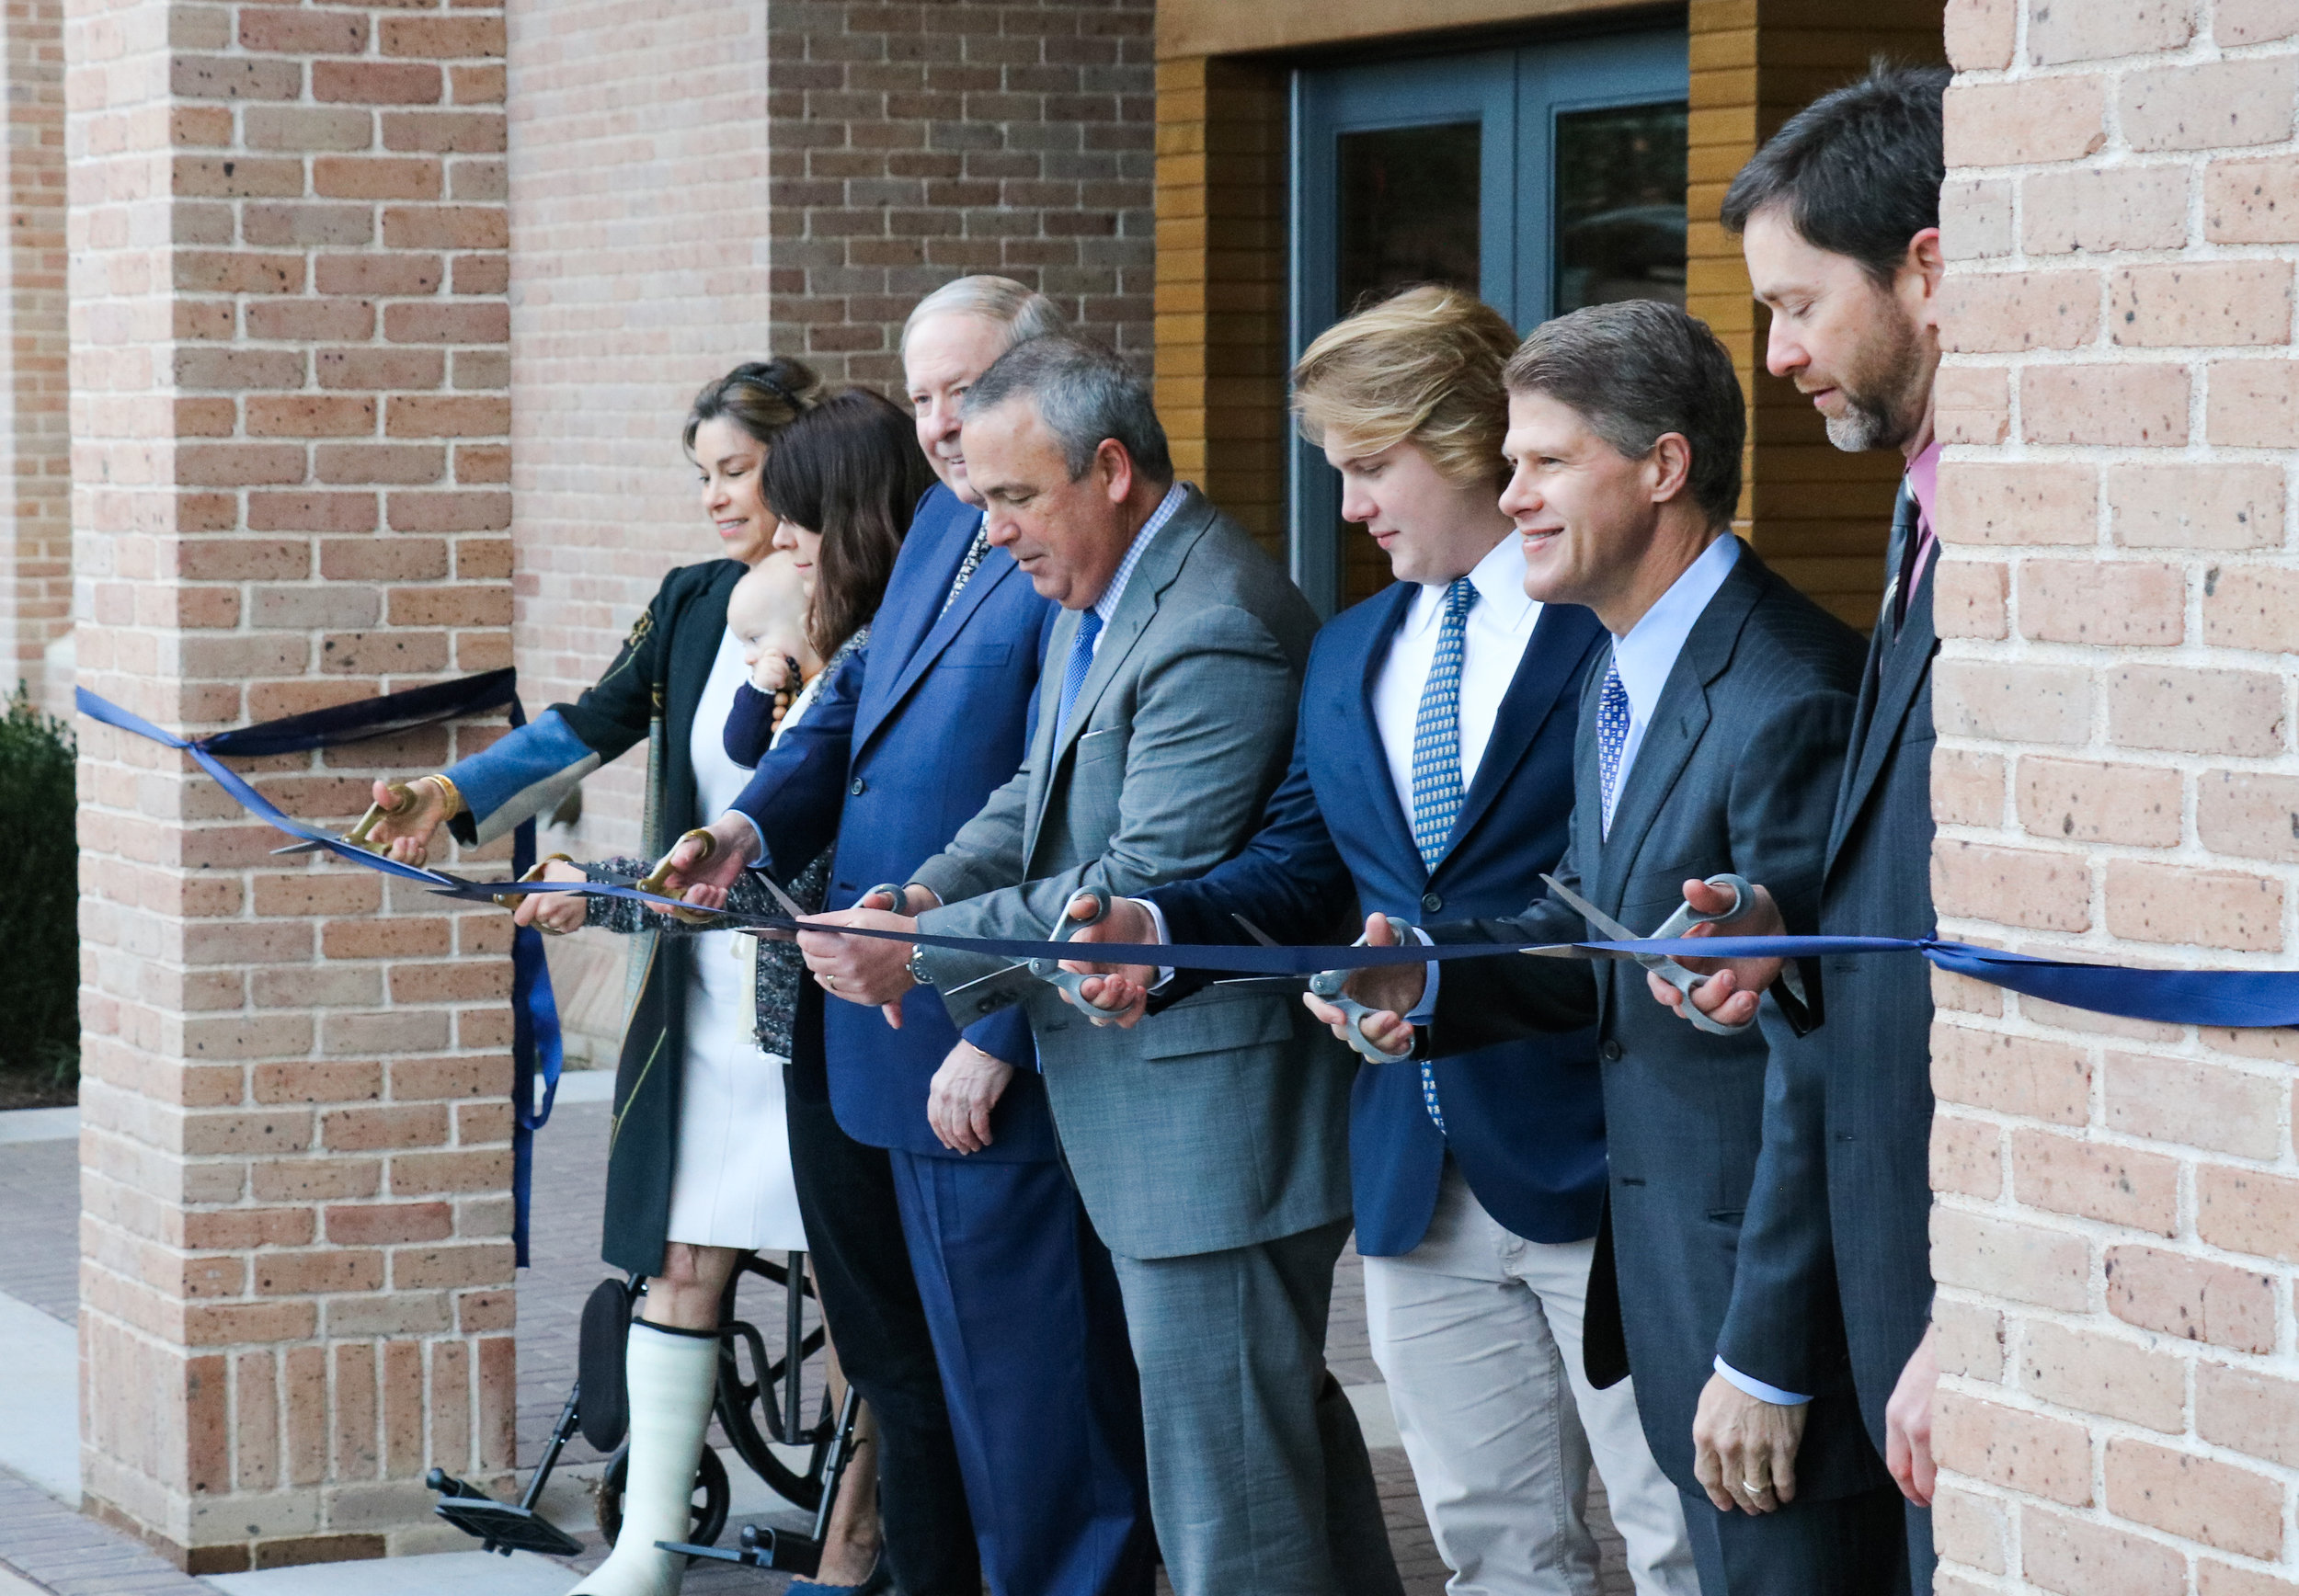 (From left) Steve and Melinda Winn, Headmaster David Dini, Student Council President Landon Wood, President of the Board of Trustees Clark Hunt and Science Department Chair Fletcher Carron cut the ribbon to officially open the Winn Science Center to students and teachers.